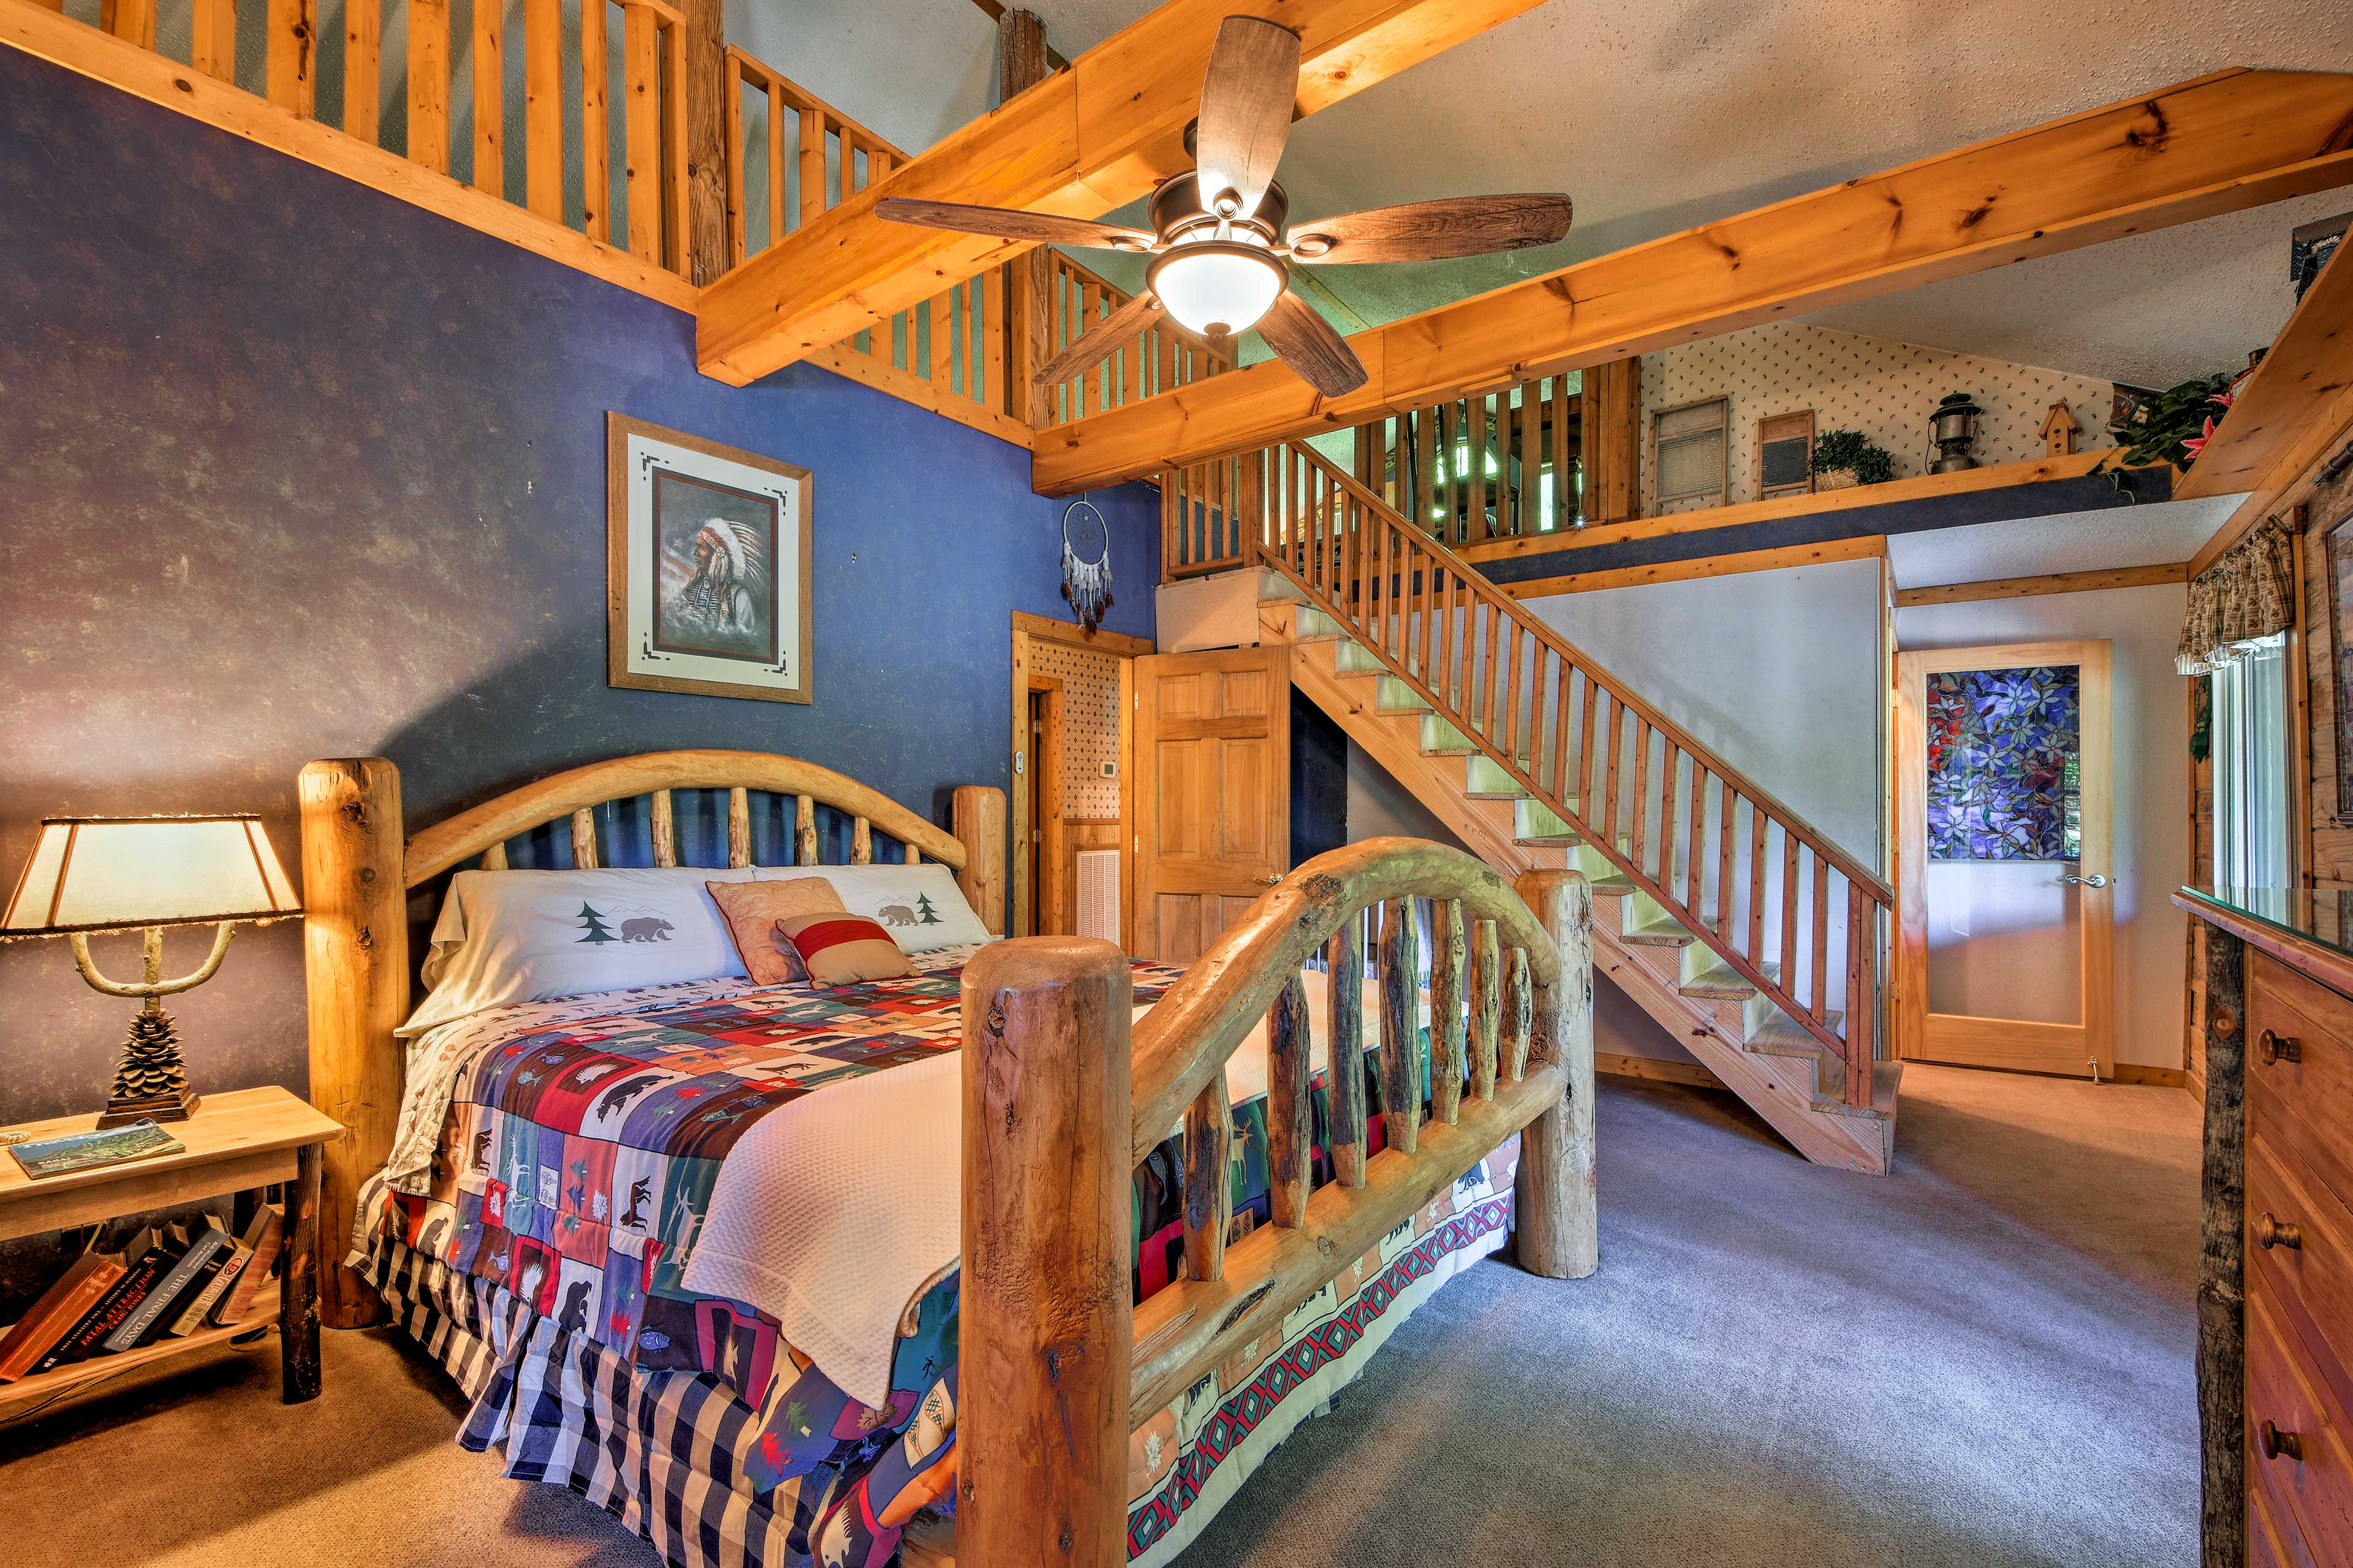 Exposed wood beams & a king wooden bed frame make this room feel rustic.